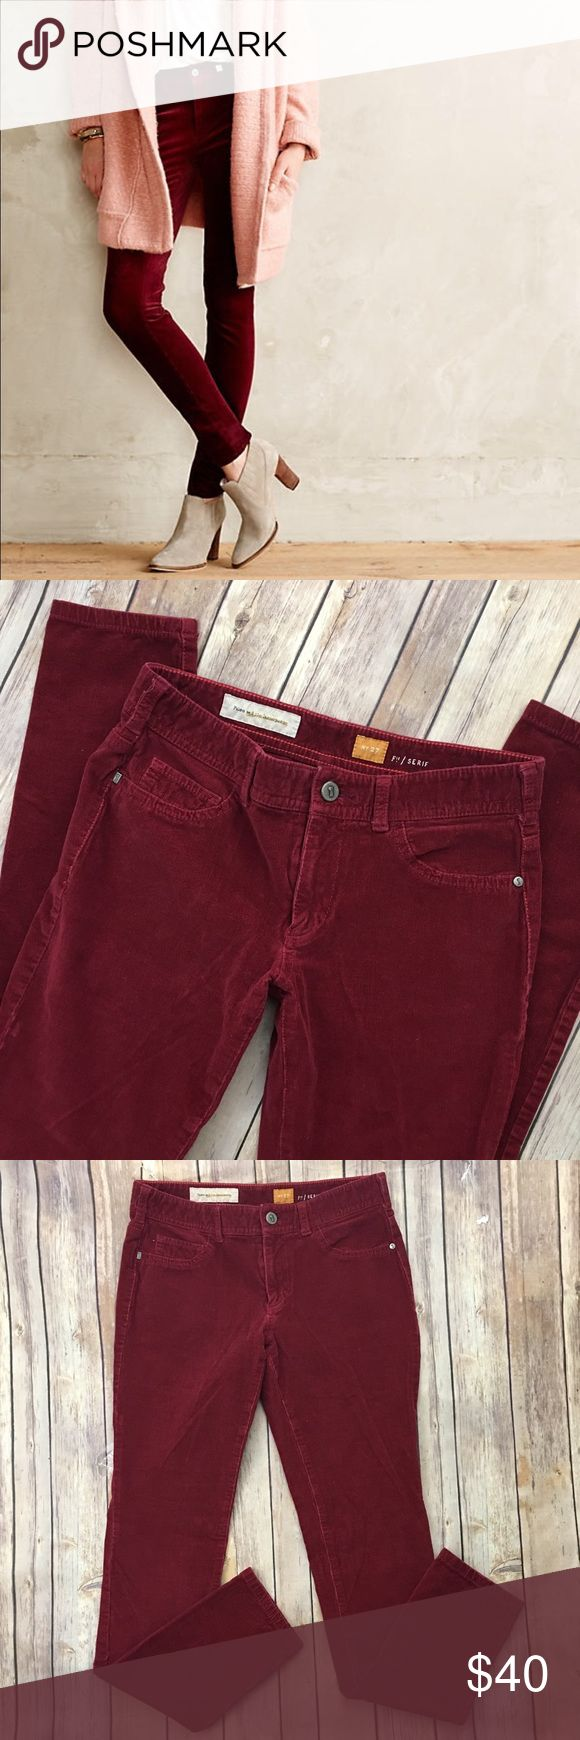 """Anthropologie Pilcro Serif Corduroy Leggings Red Tag size - 27 Waist measured across - 14.5"""" Inseam - 30"""" Rise - 8"""" Great used condition! Always open to reasonable offers. Anthropologie Pants Leggings"""